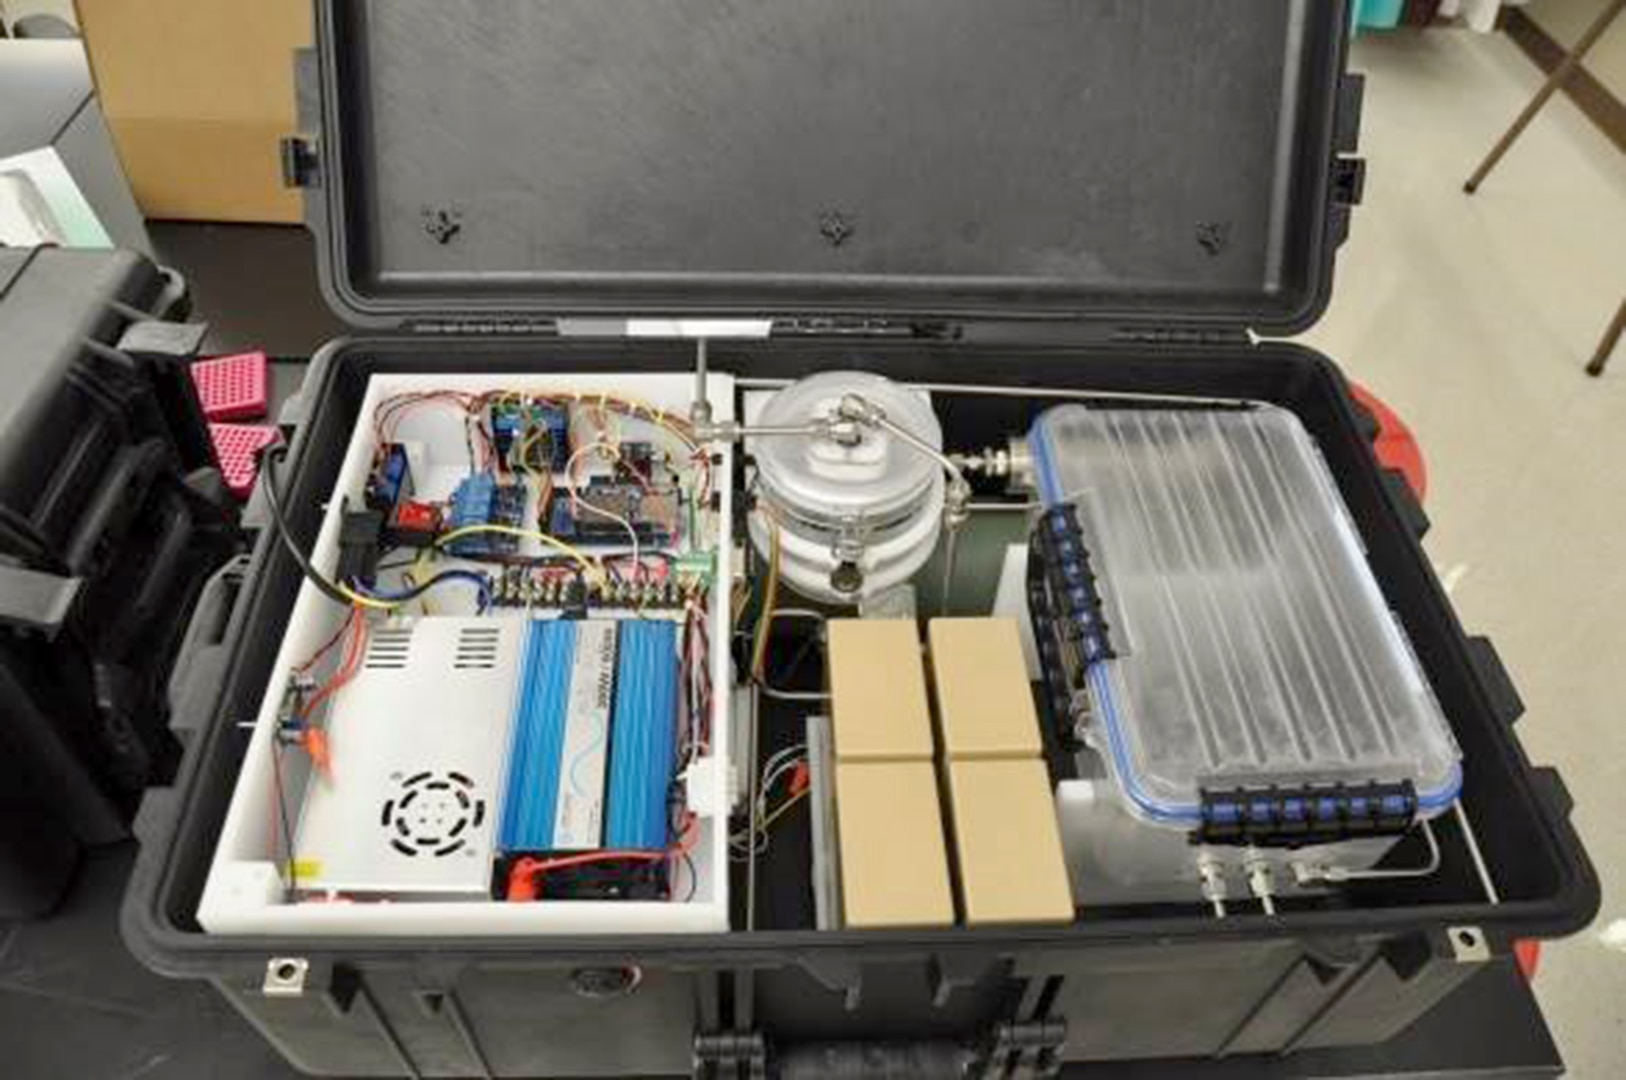 The Naval Medical Research Unit San Antonio-redesigned field portable ozone sterilizer chamber is housed in a ruggedized case and can be powered by rechargeable batteries or an external power source.